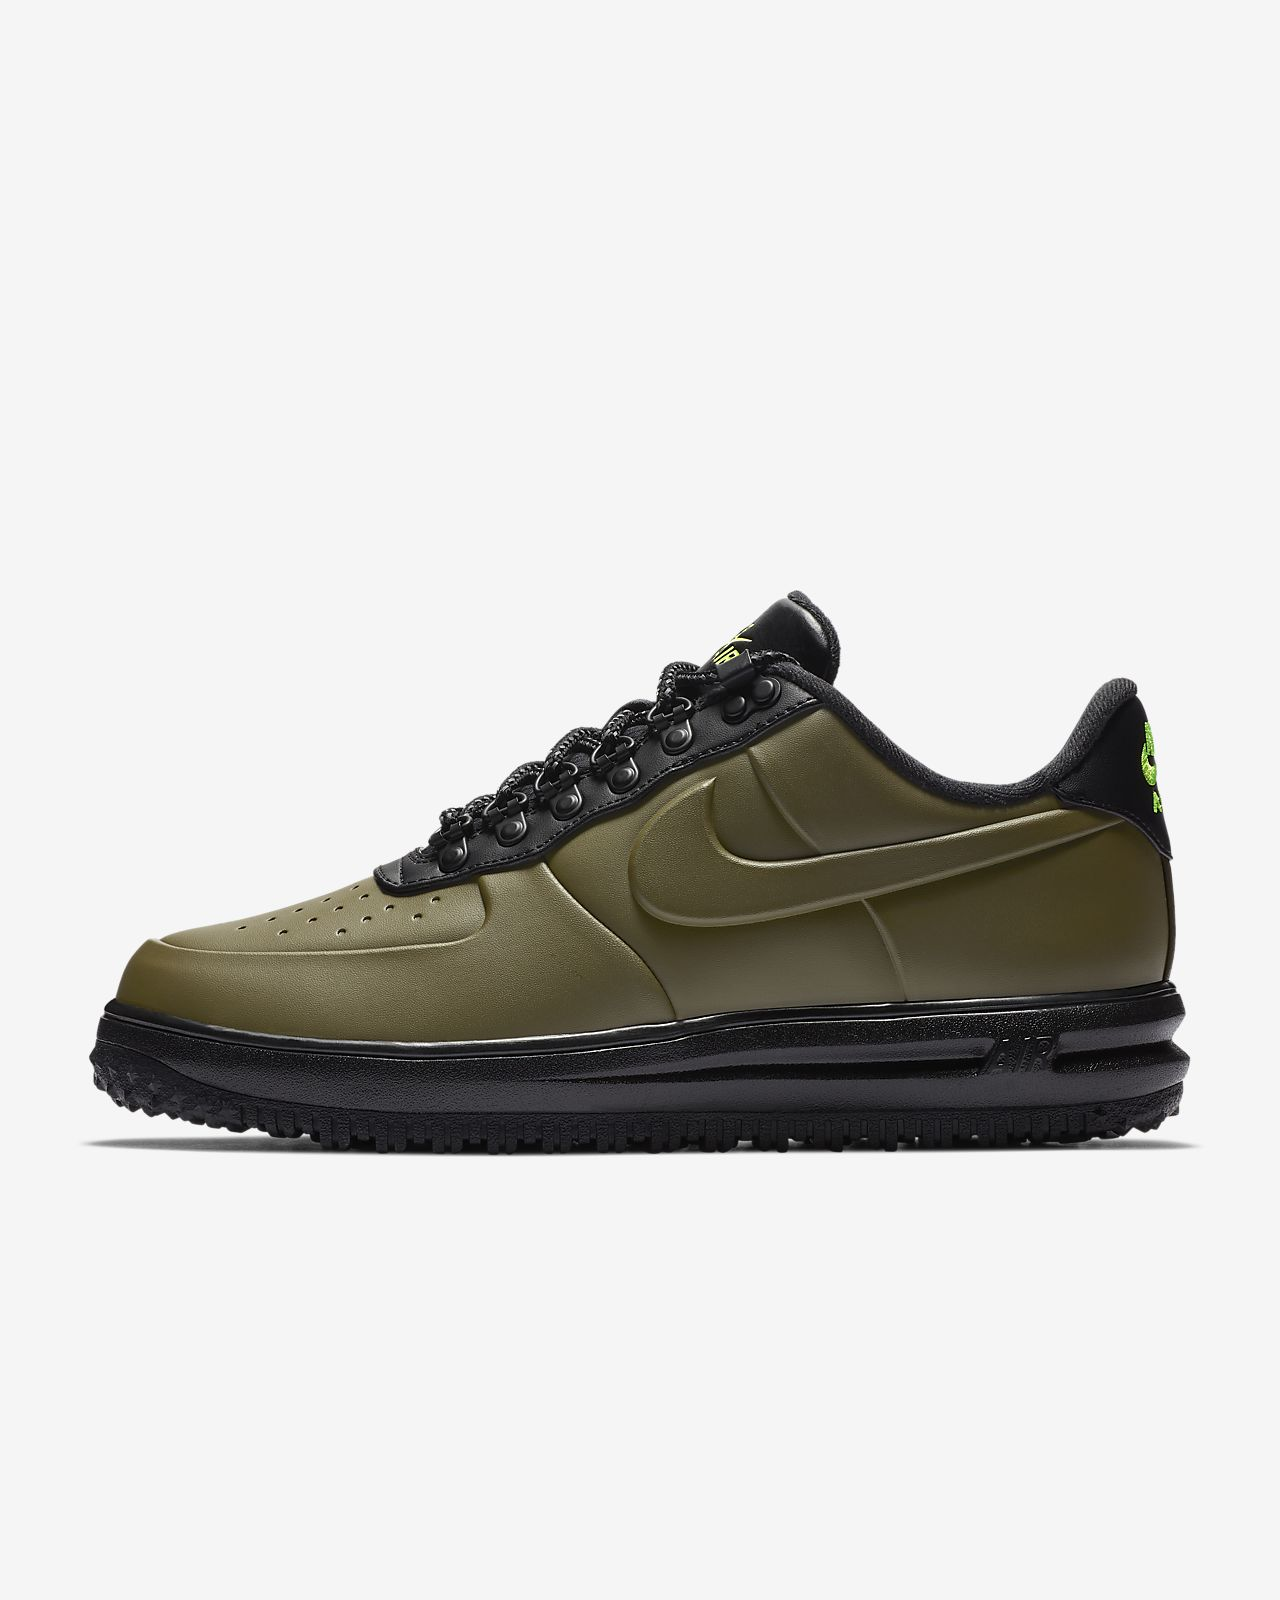 outlet store 72f20 a474e ... Chaussure Nike Lunar Force 1 Duckboot Low pour Homme